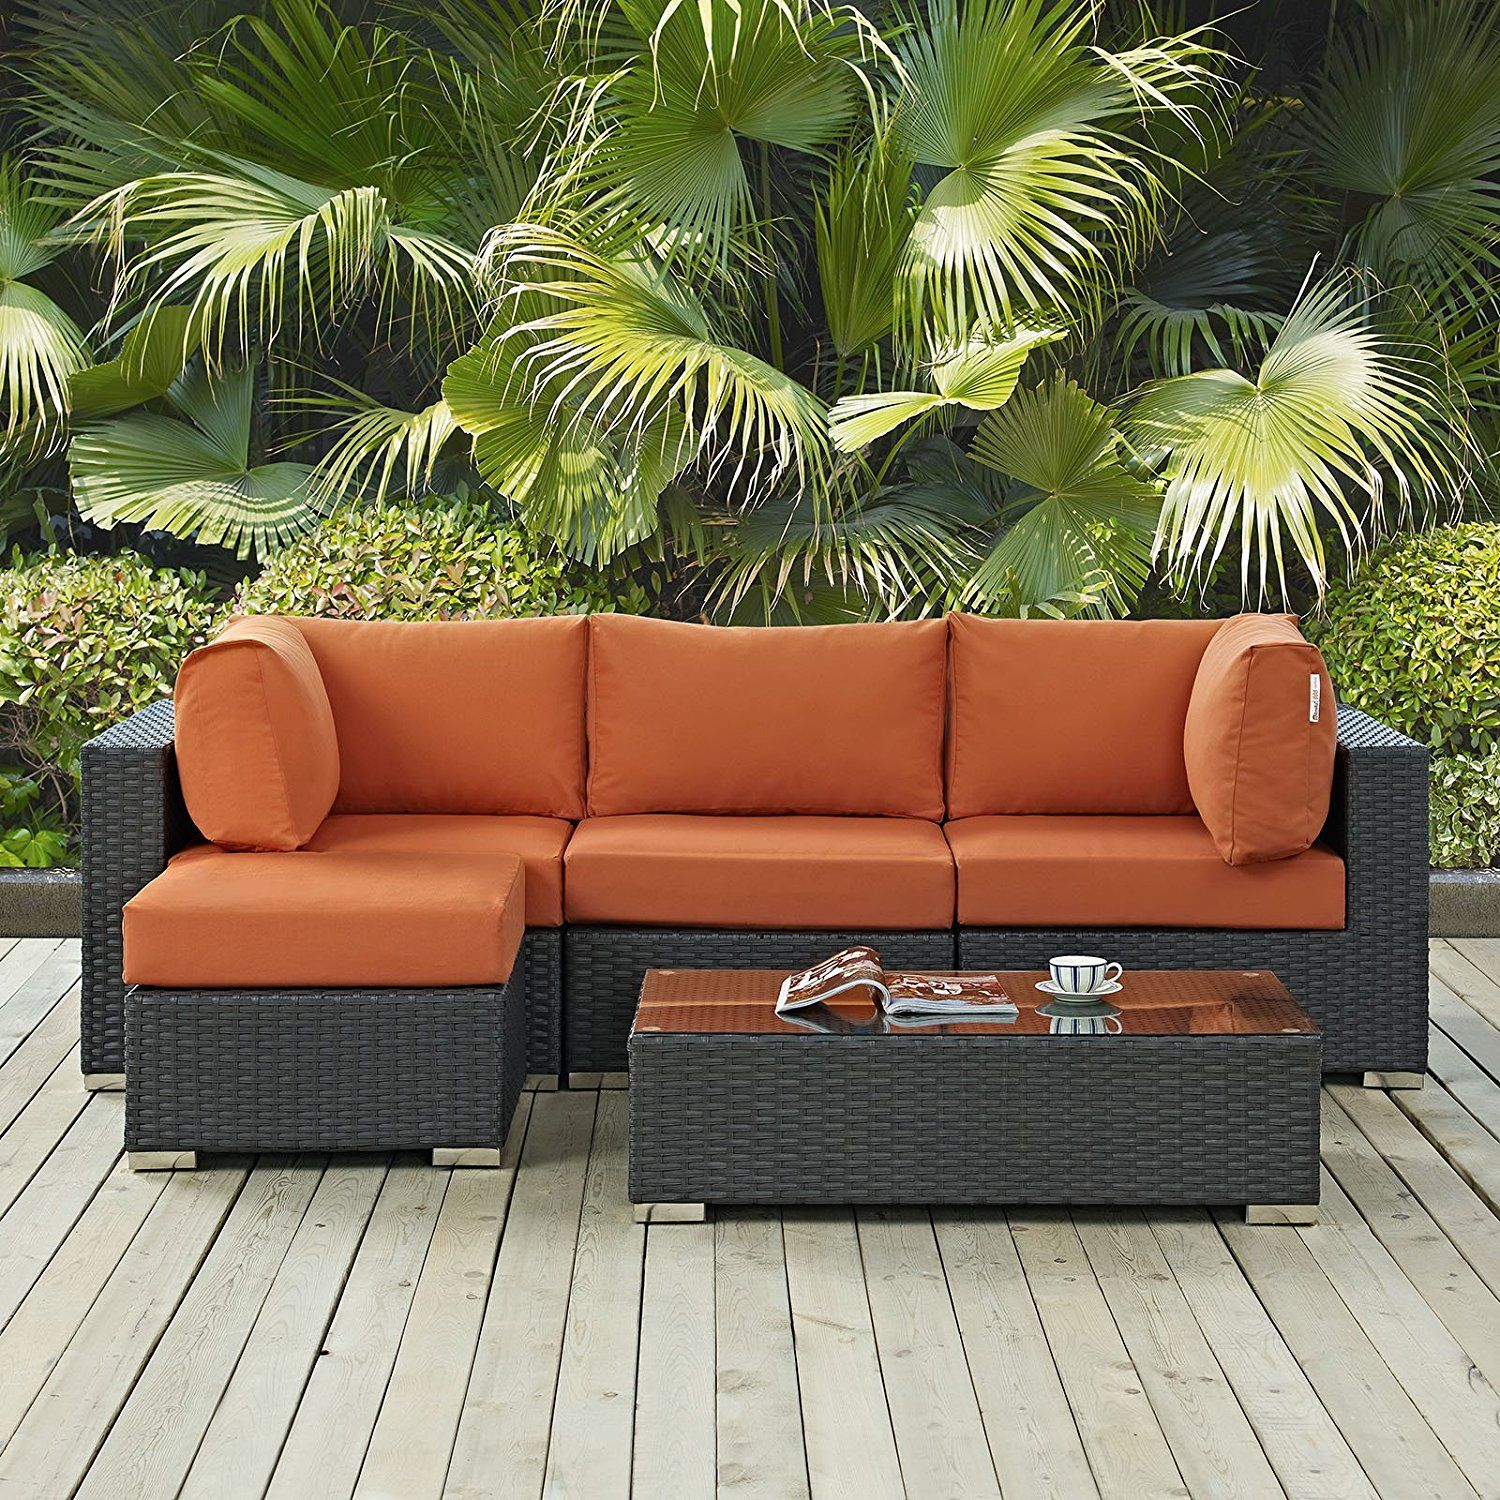 patio of set pasadena sale outdoor furniture piece inside ove best aluminum cushions sectional decors sofa collection frame